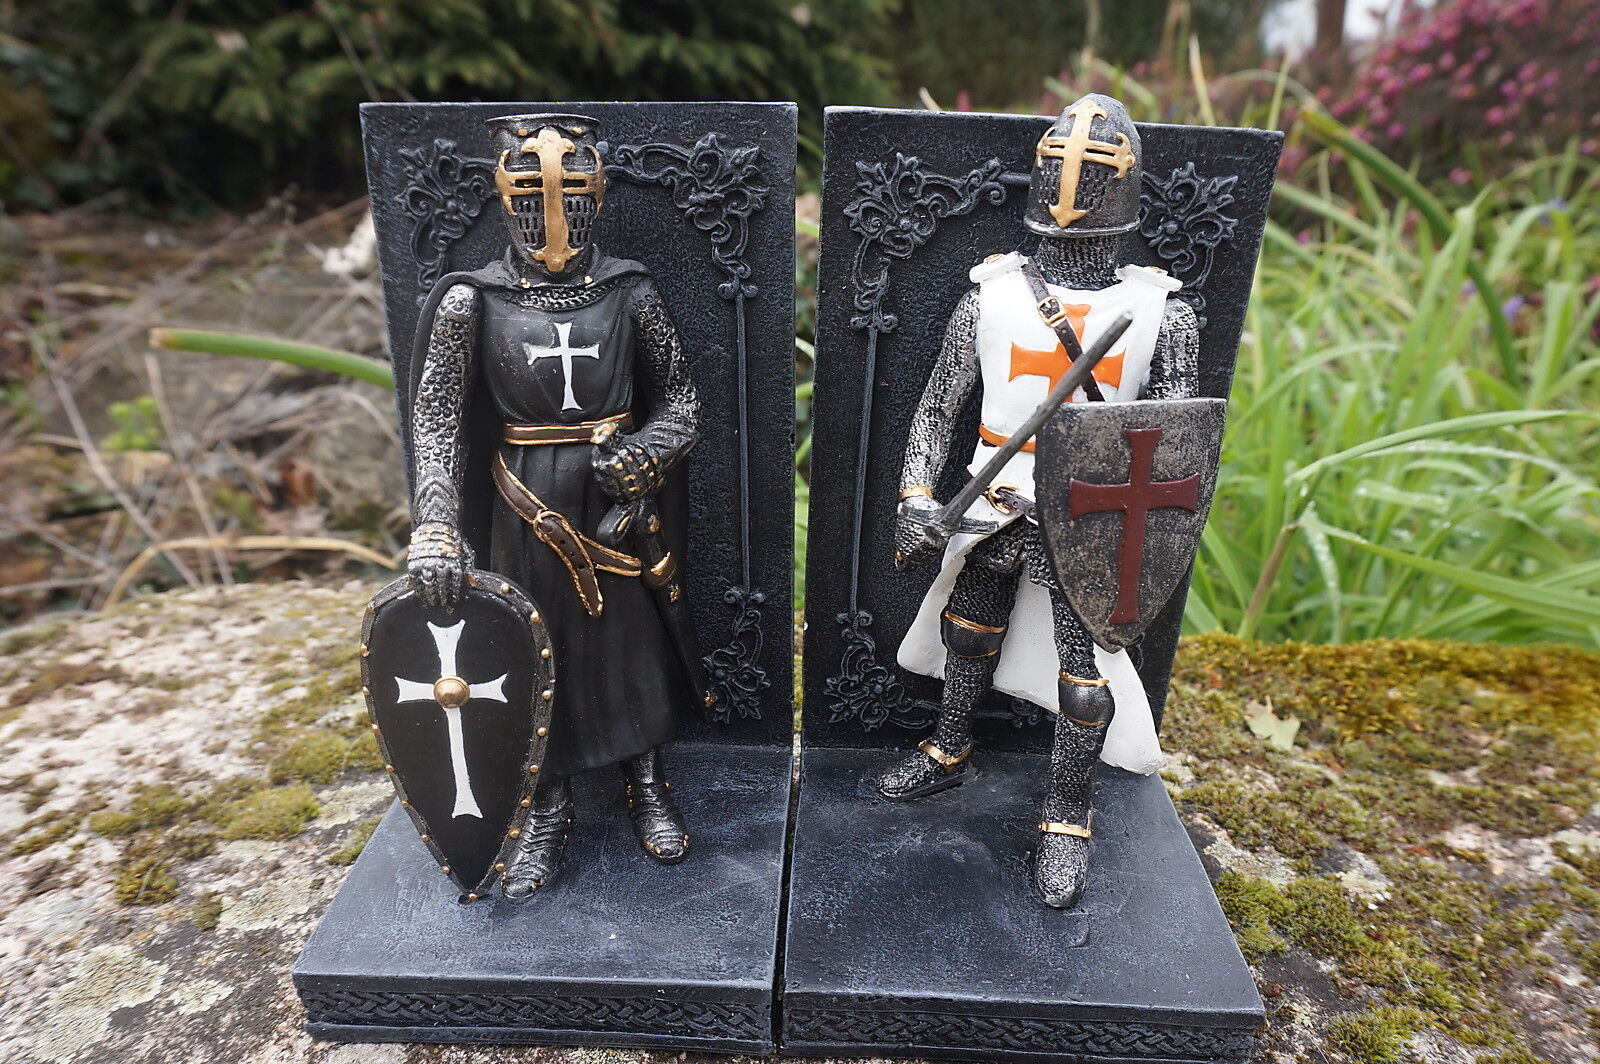 65261 Grünhouse book figurine soldier medieval crosses templar resin